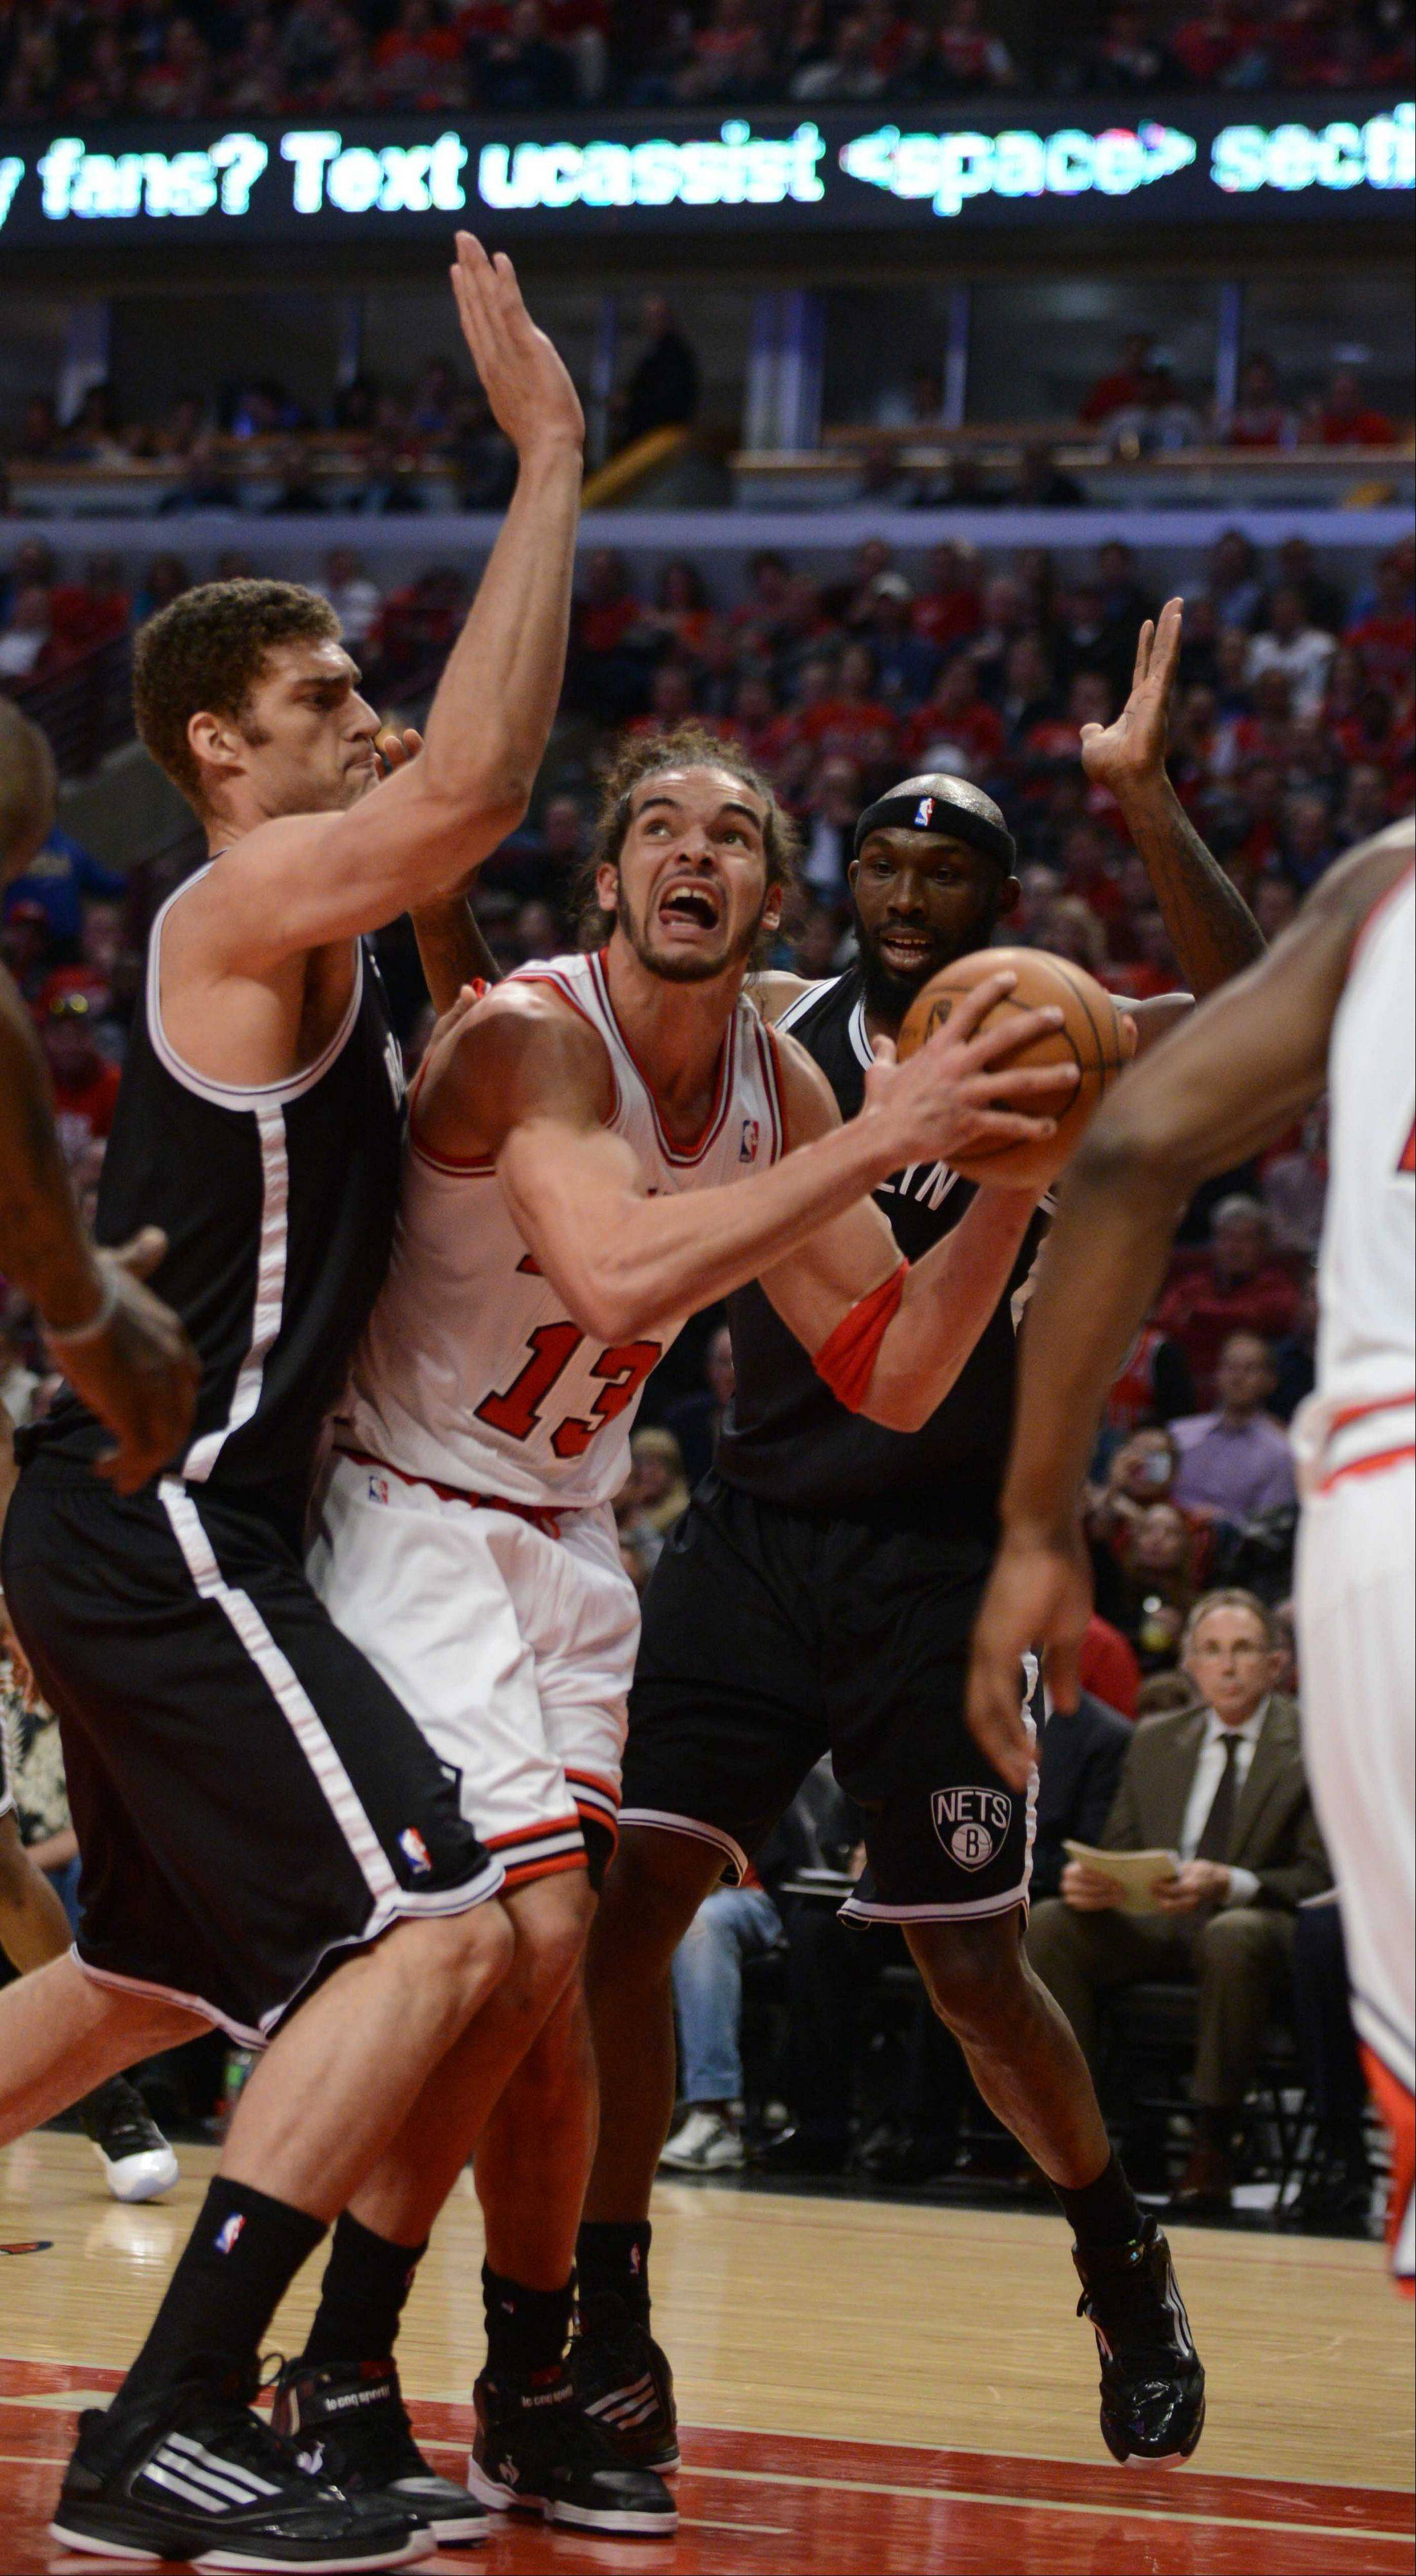 Joakim Noah of Chicago looks for a shot.